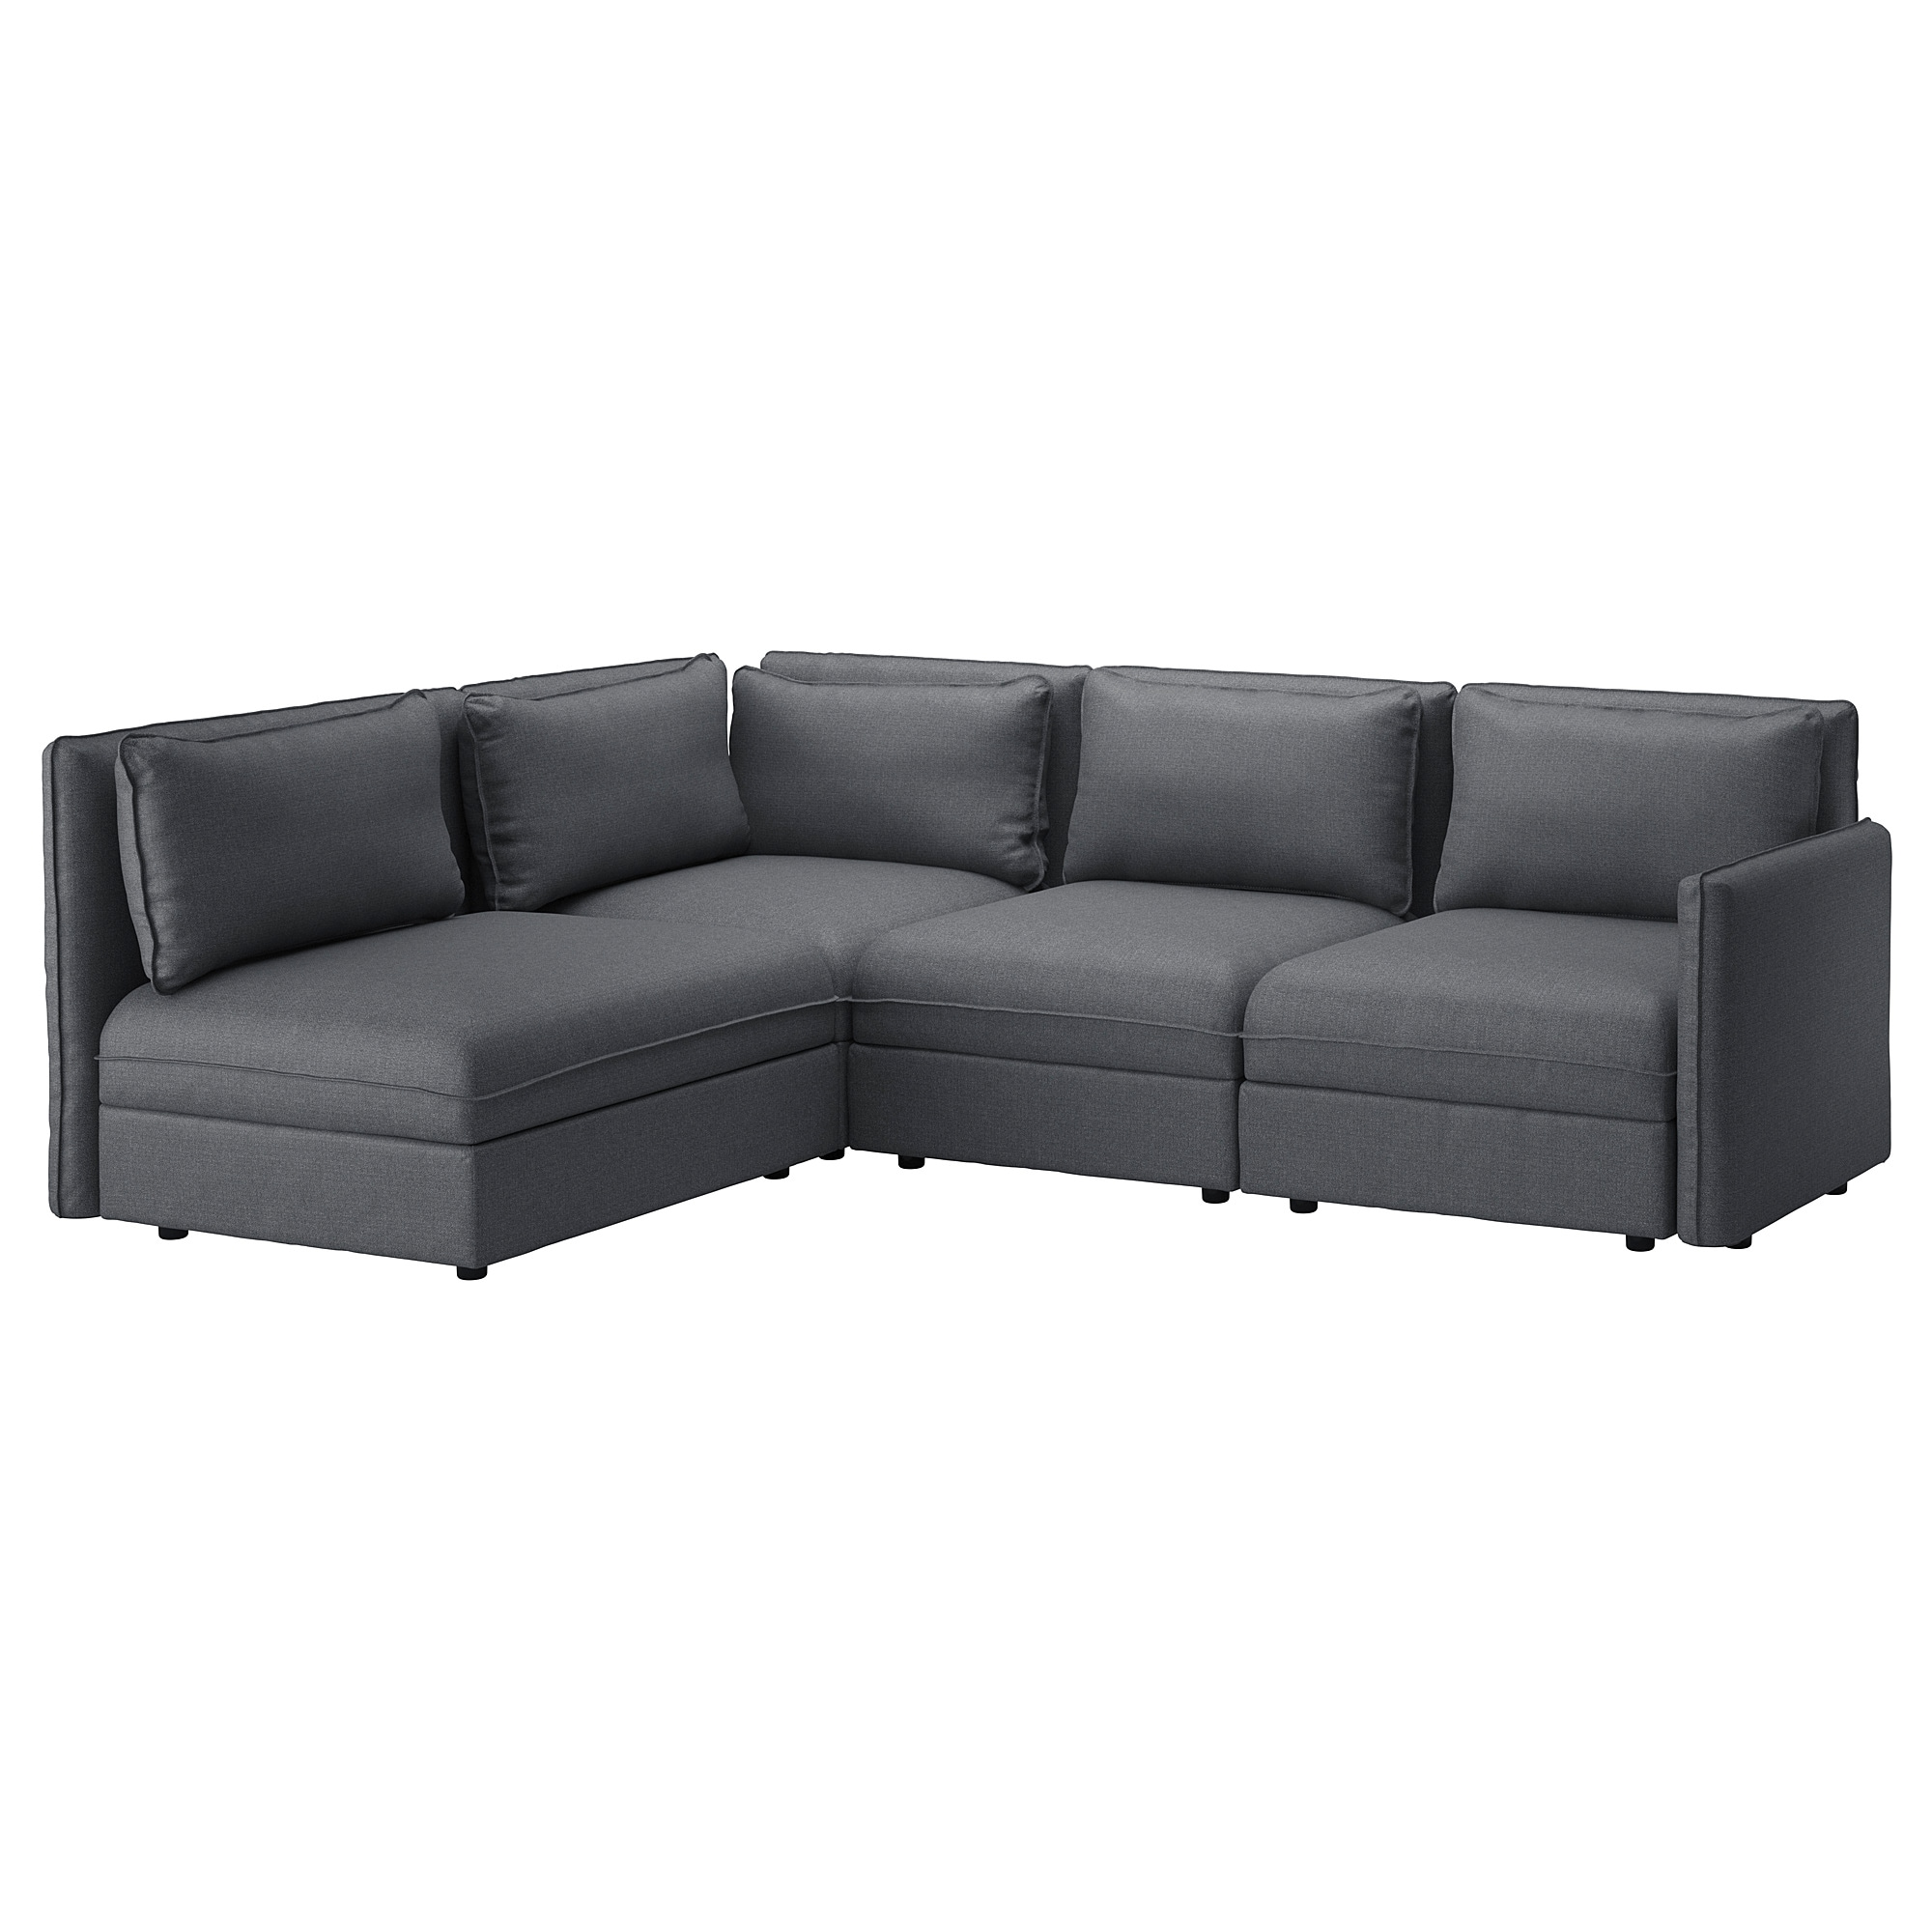 VALLENTUNA Modular corner sofa, 3-seat - with storage, Hillared dark ...